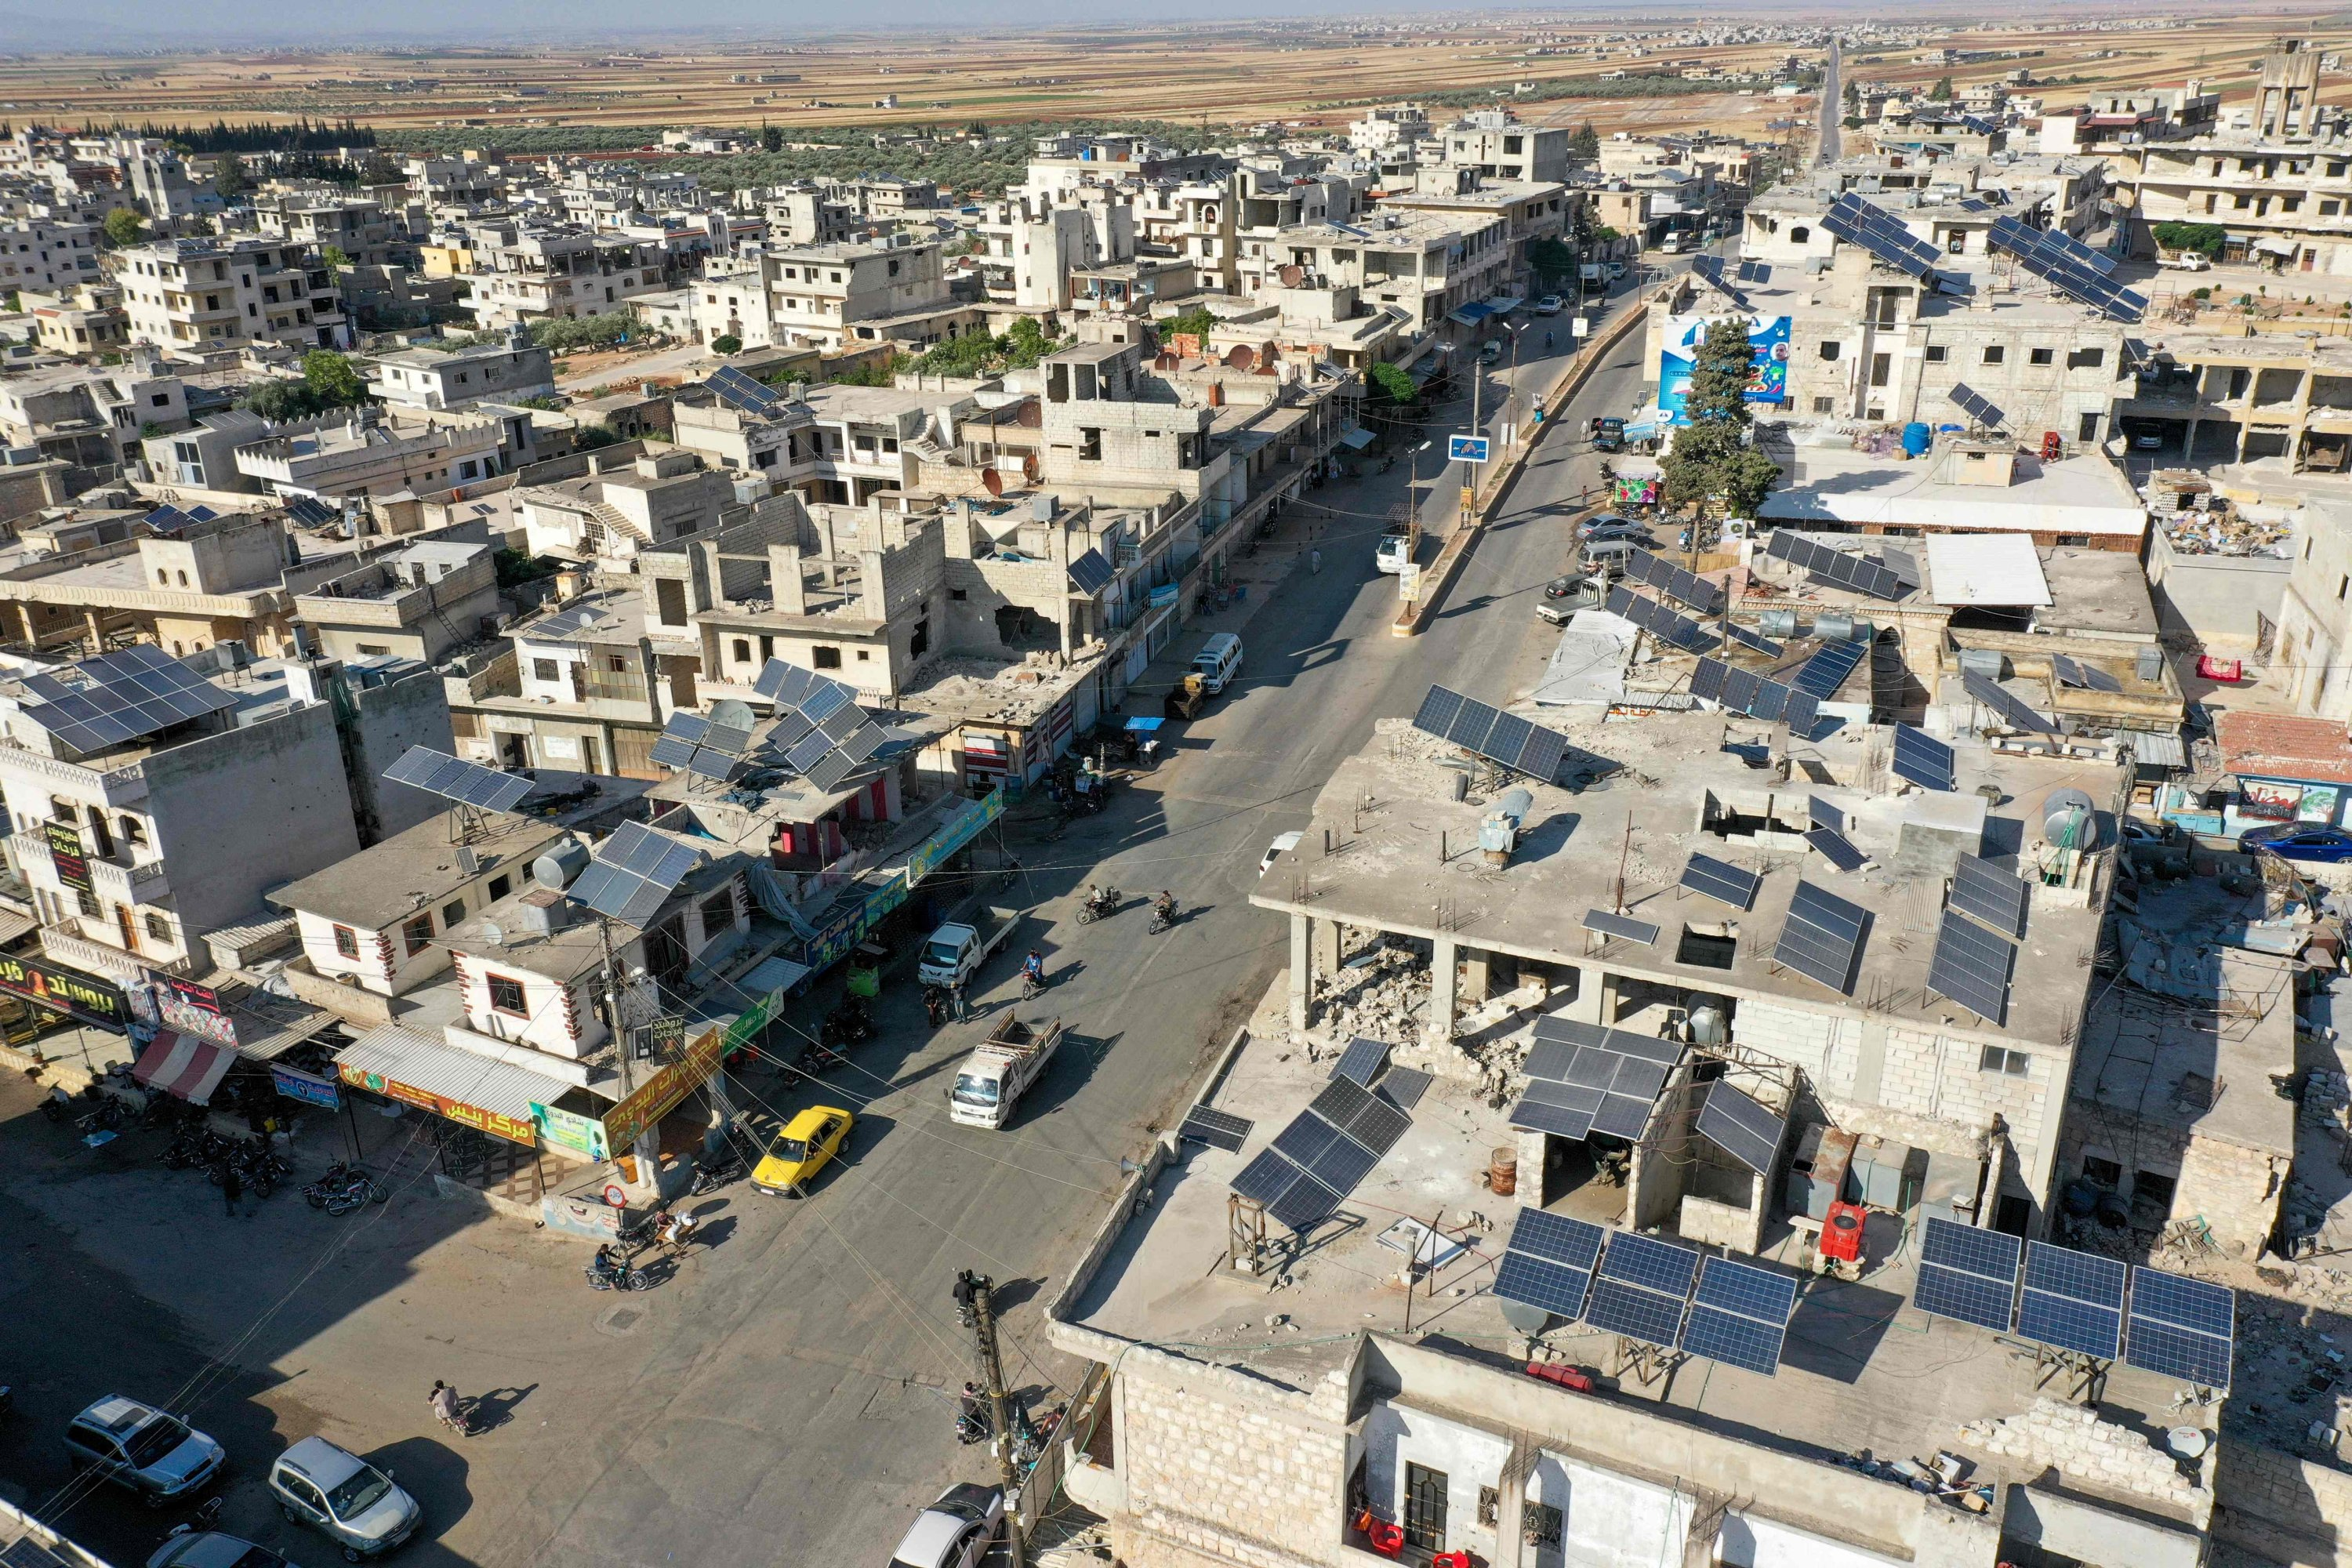 Solar panels on rooftops in Binnish in Syria's opposition-held northwestern province of Idlib, Syria, June 3, 2021. (AFP Photo)